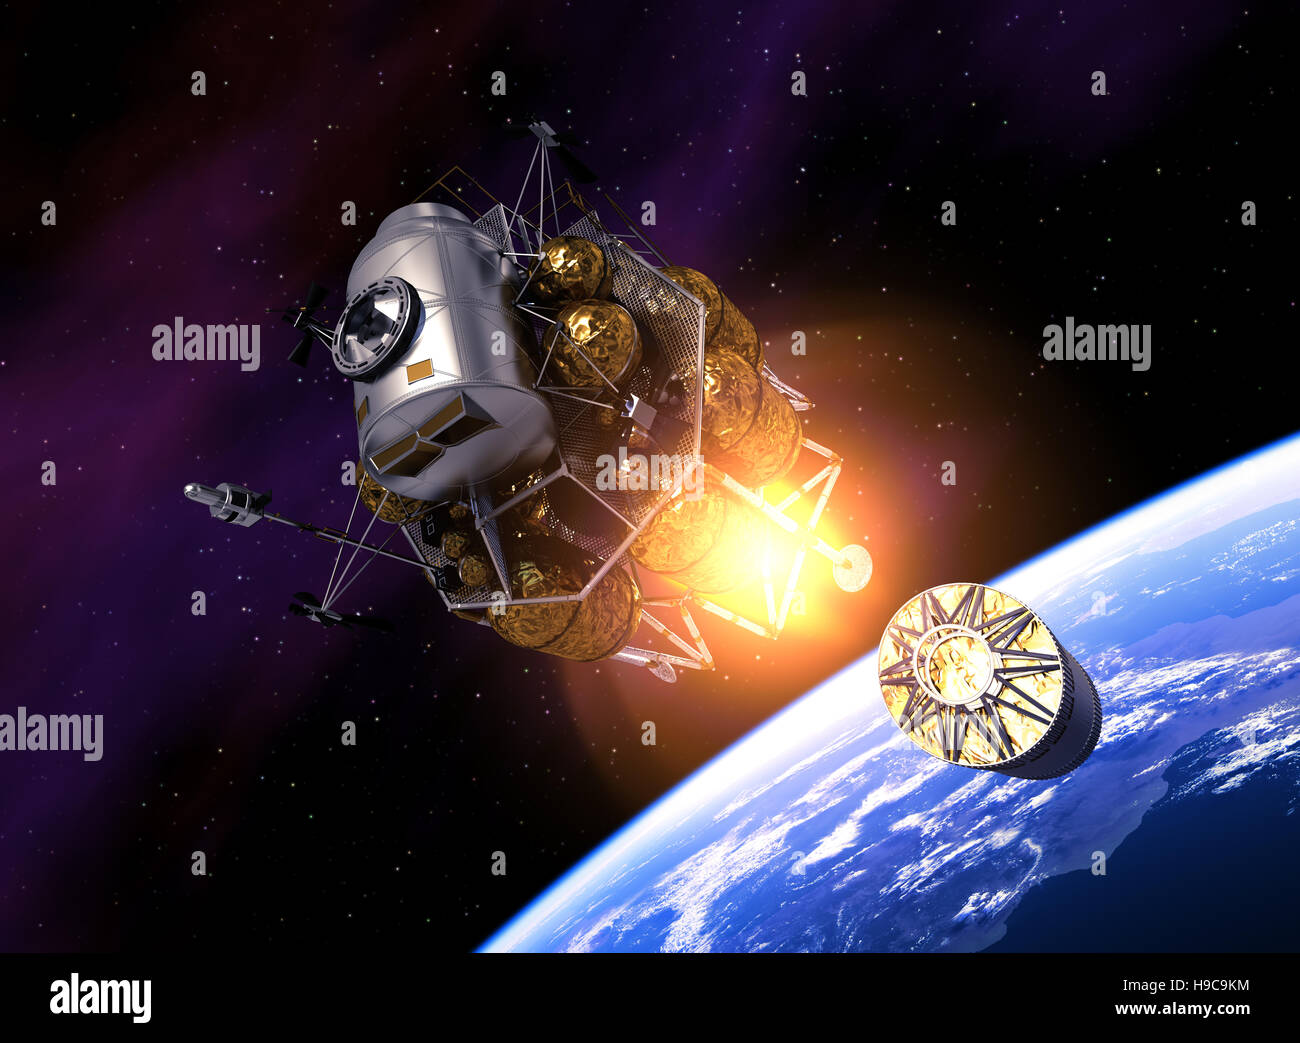 Interplanetary Space Station Launch Into Space. 3D Illustration. - Stock Image